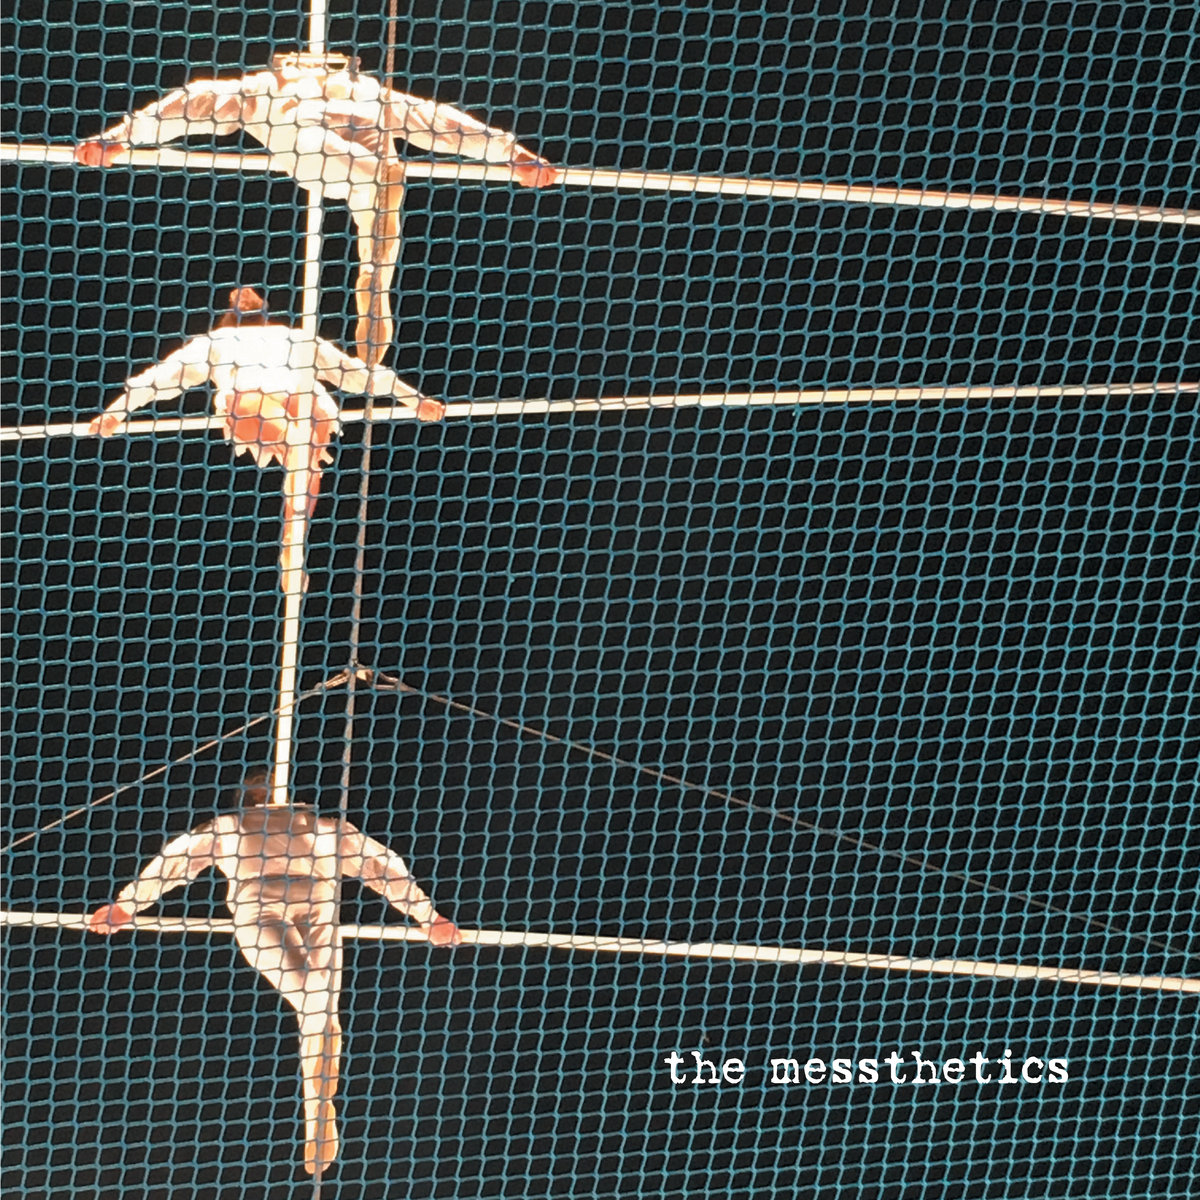 a1109089451 10 Fugazis Joe Lally and Brendan Canty form The Messthetics, share Serpent Tongue from self titled debut: Listen